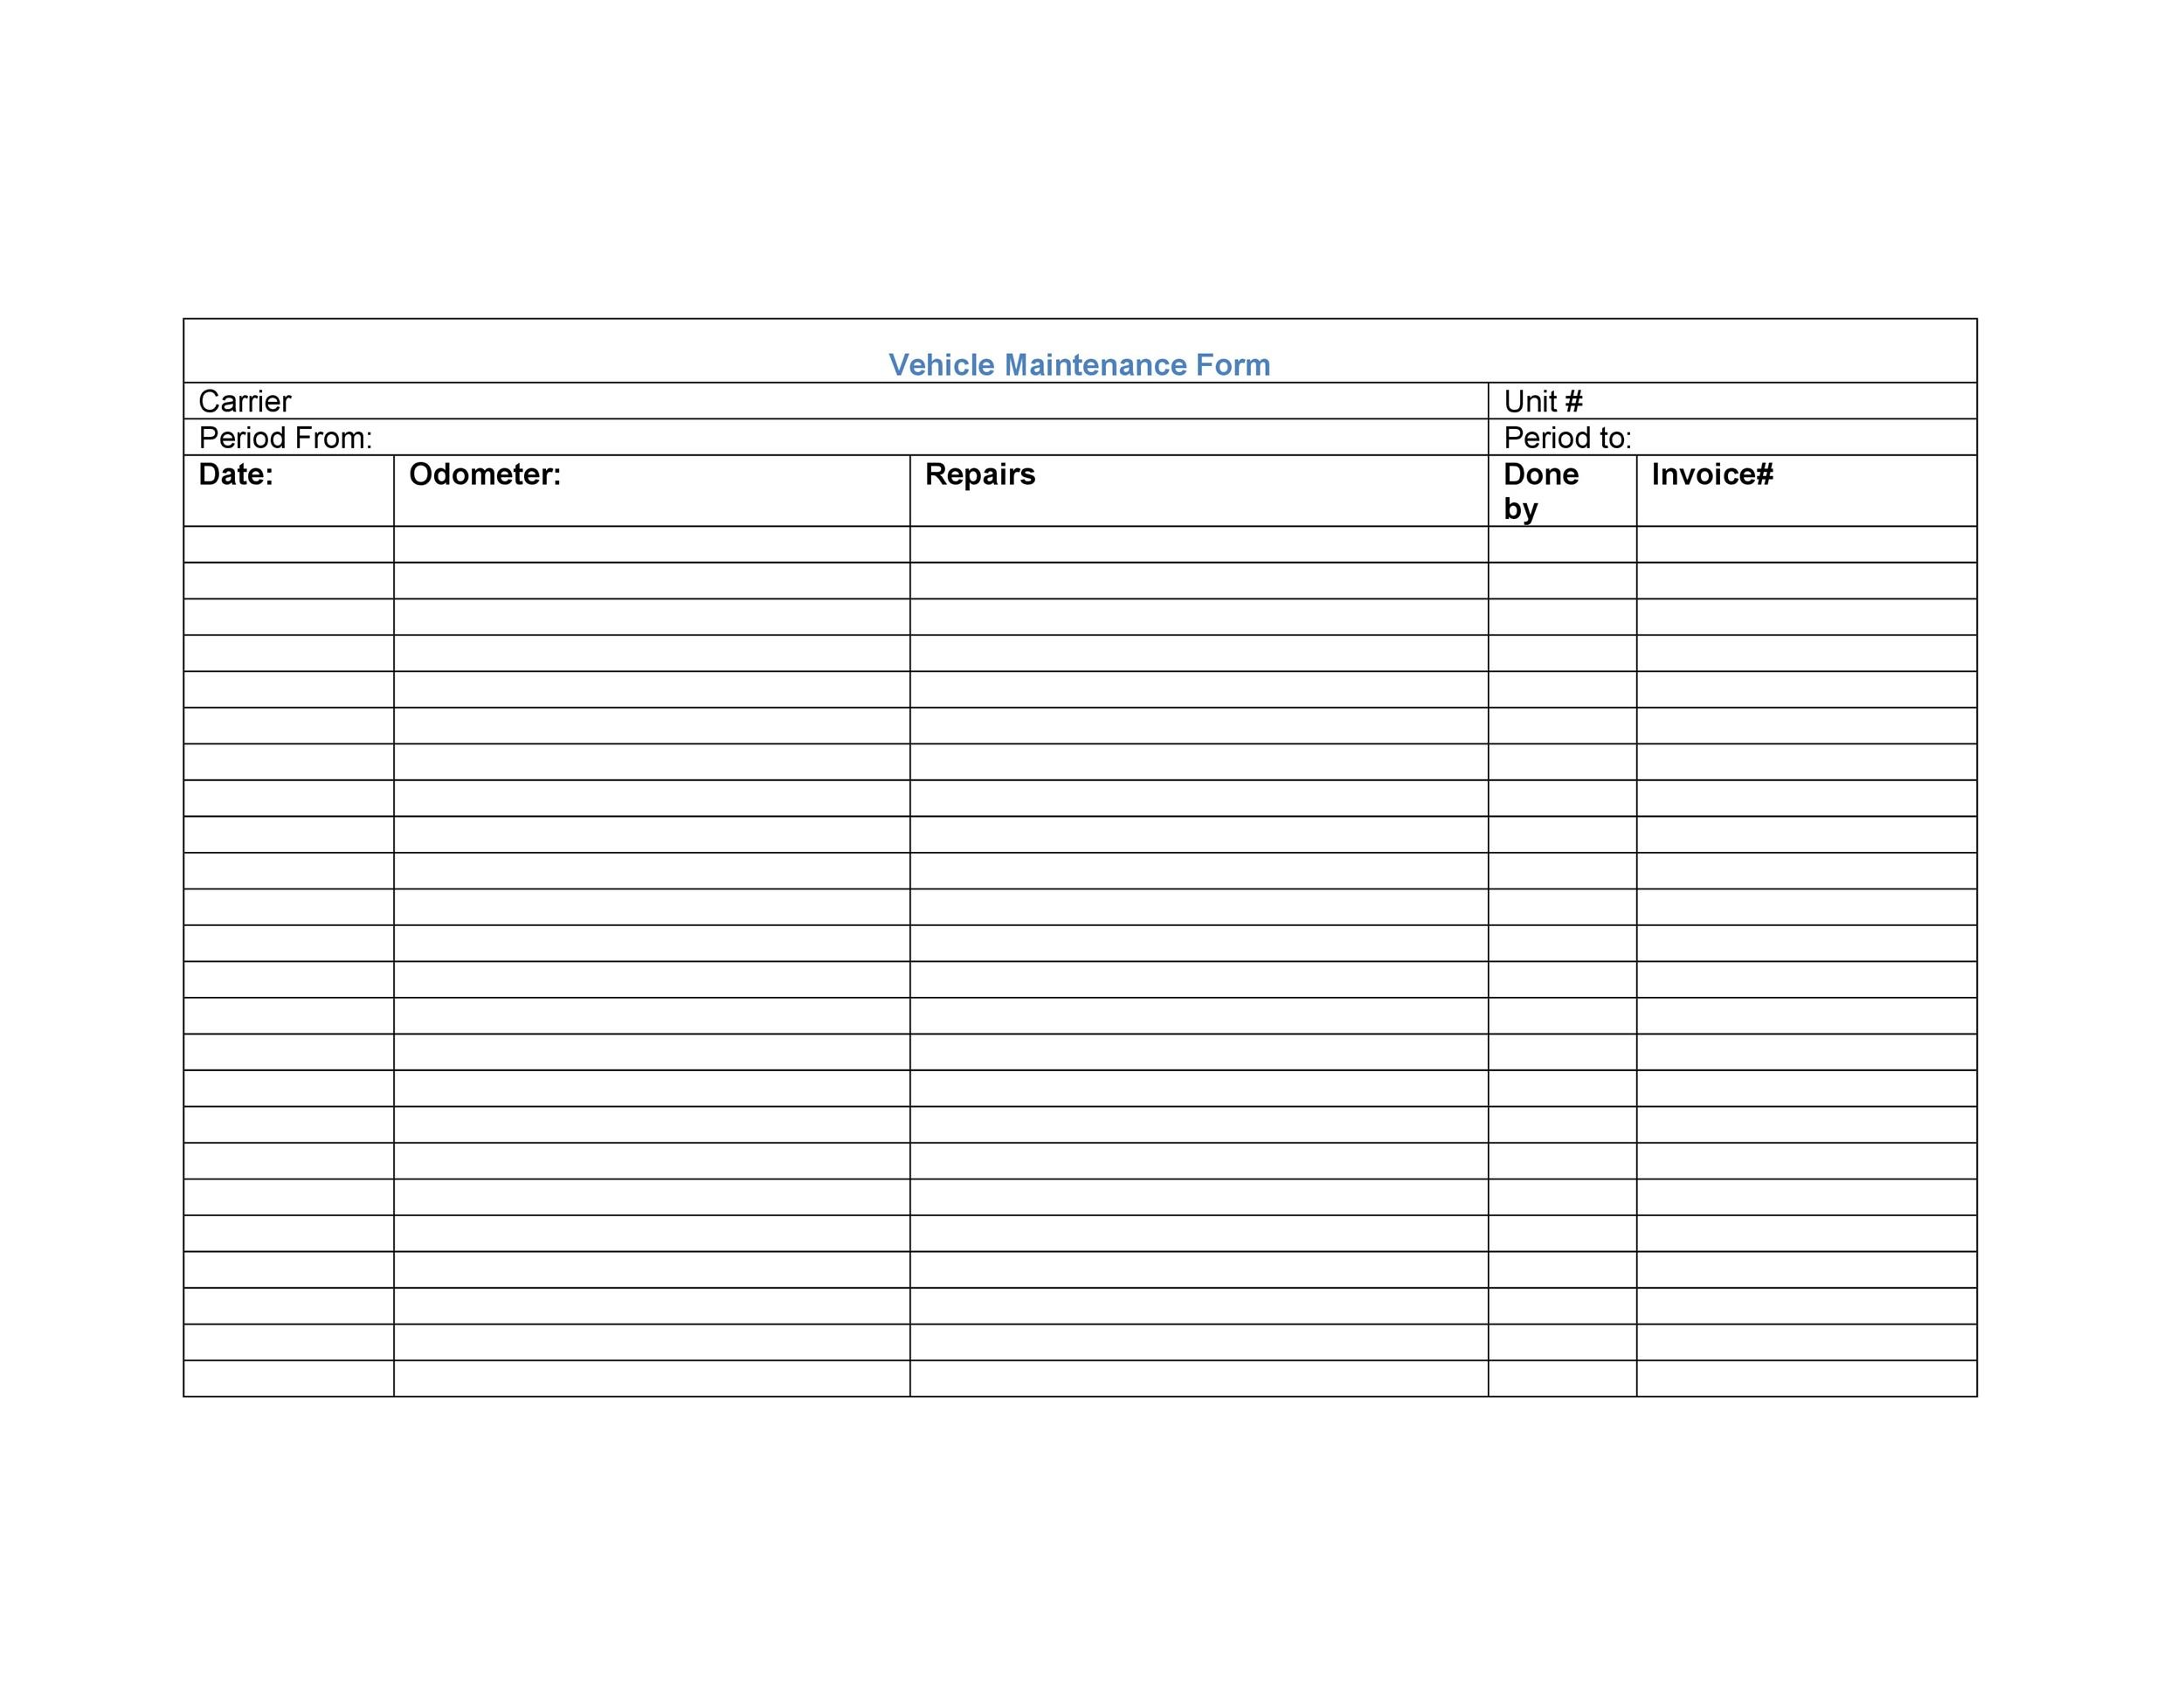 006 Staggering Vehicle Maintenance Log Template High Resolution  Microsoft CarFull